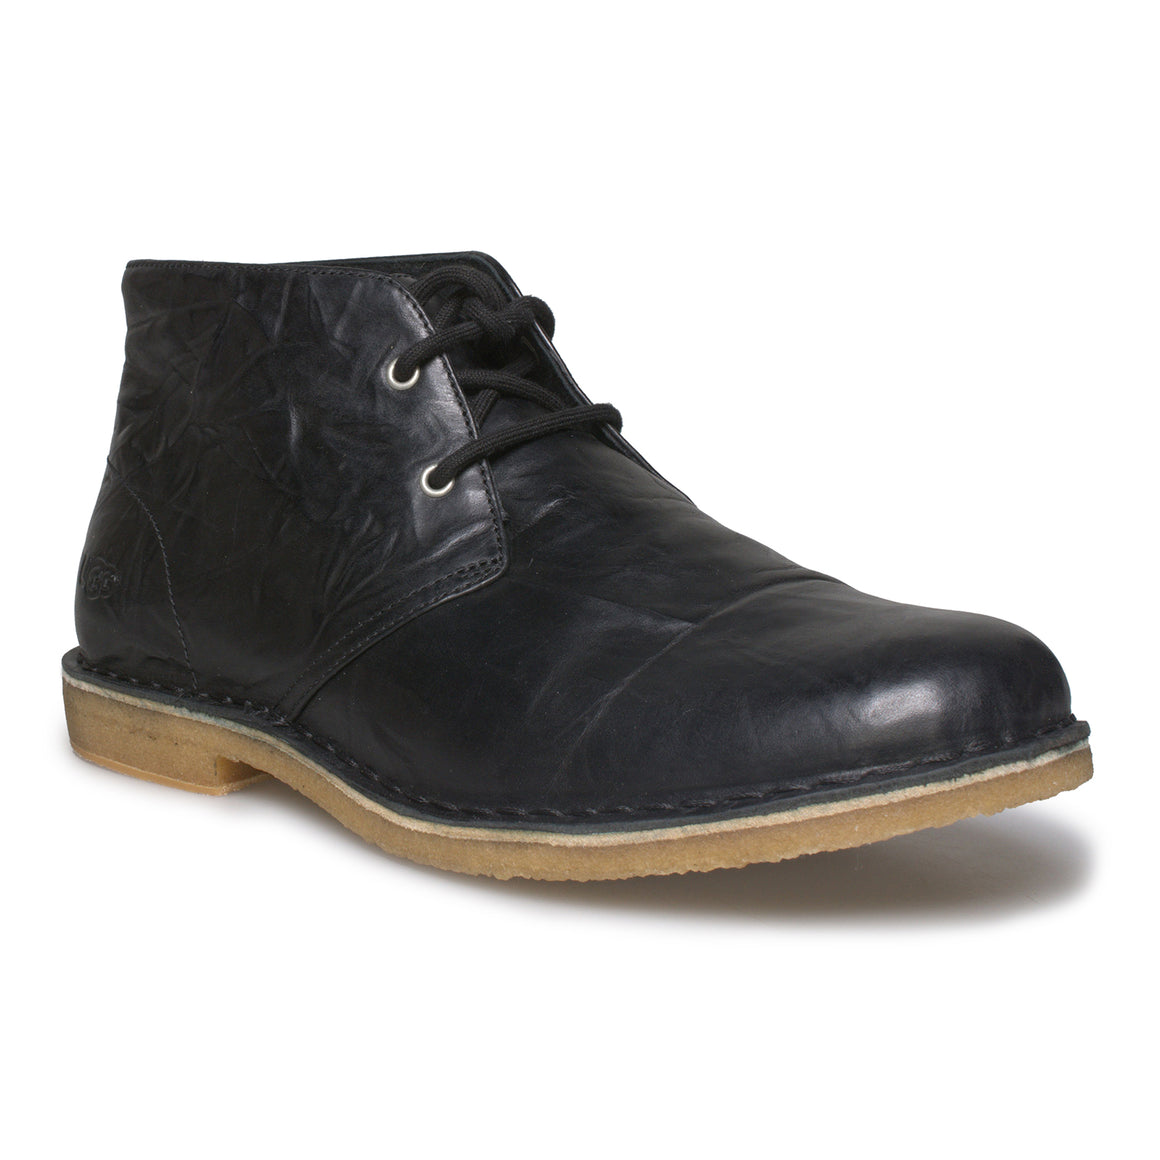 UGG Leighton Black Boots - Men's